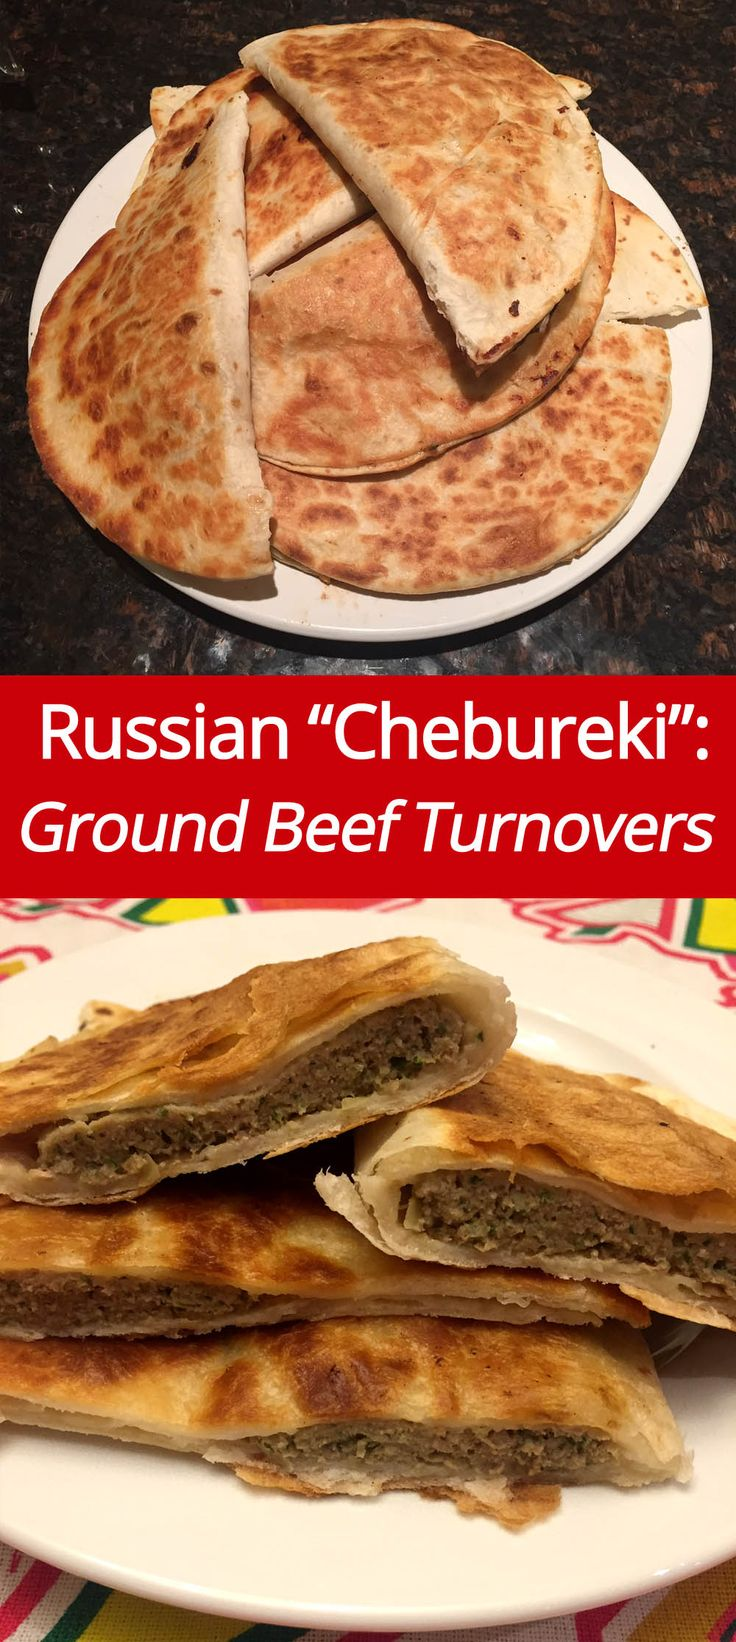 Russian Chebureki Recipe - Ground Beef Turnovers!